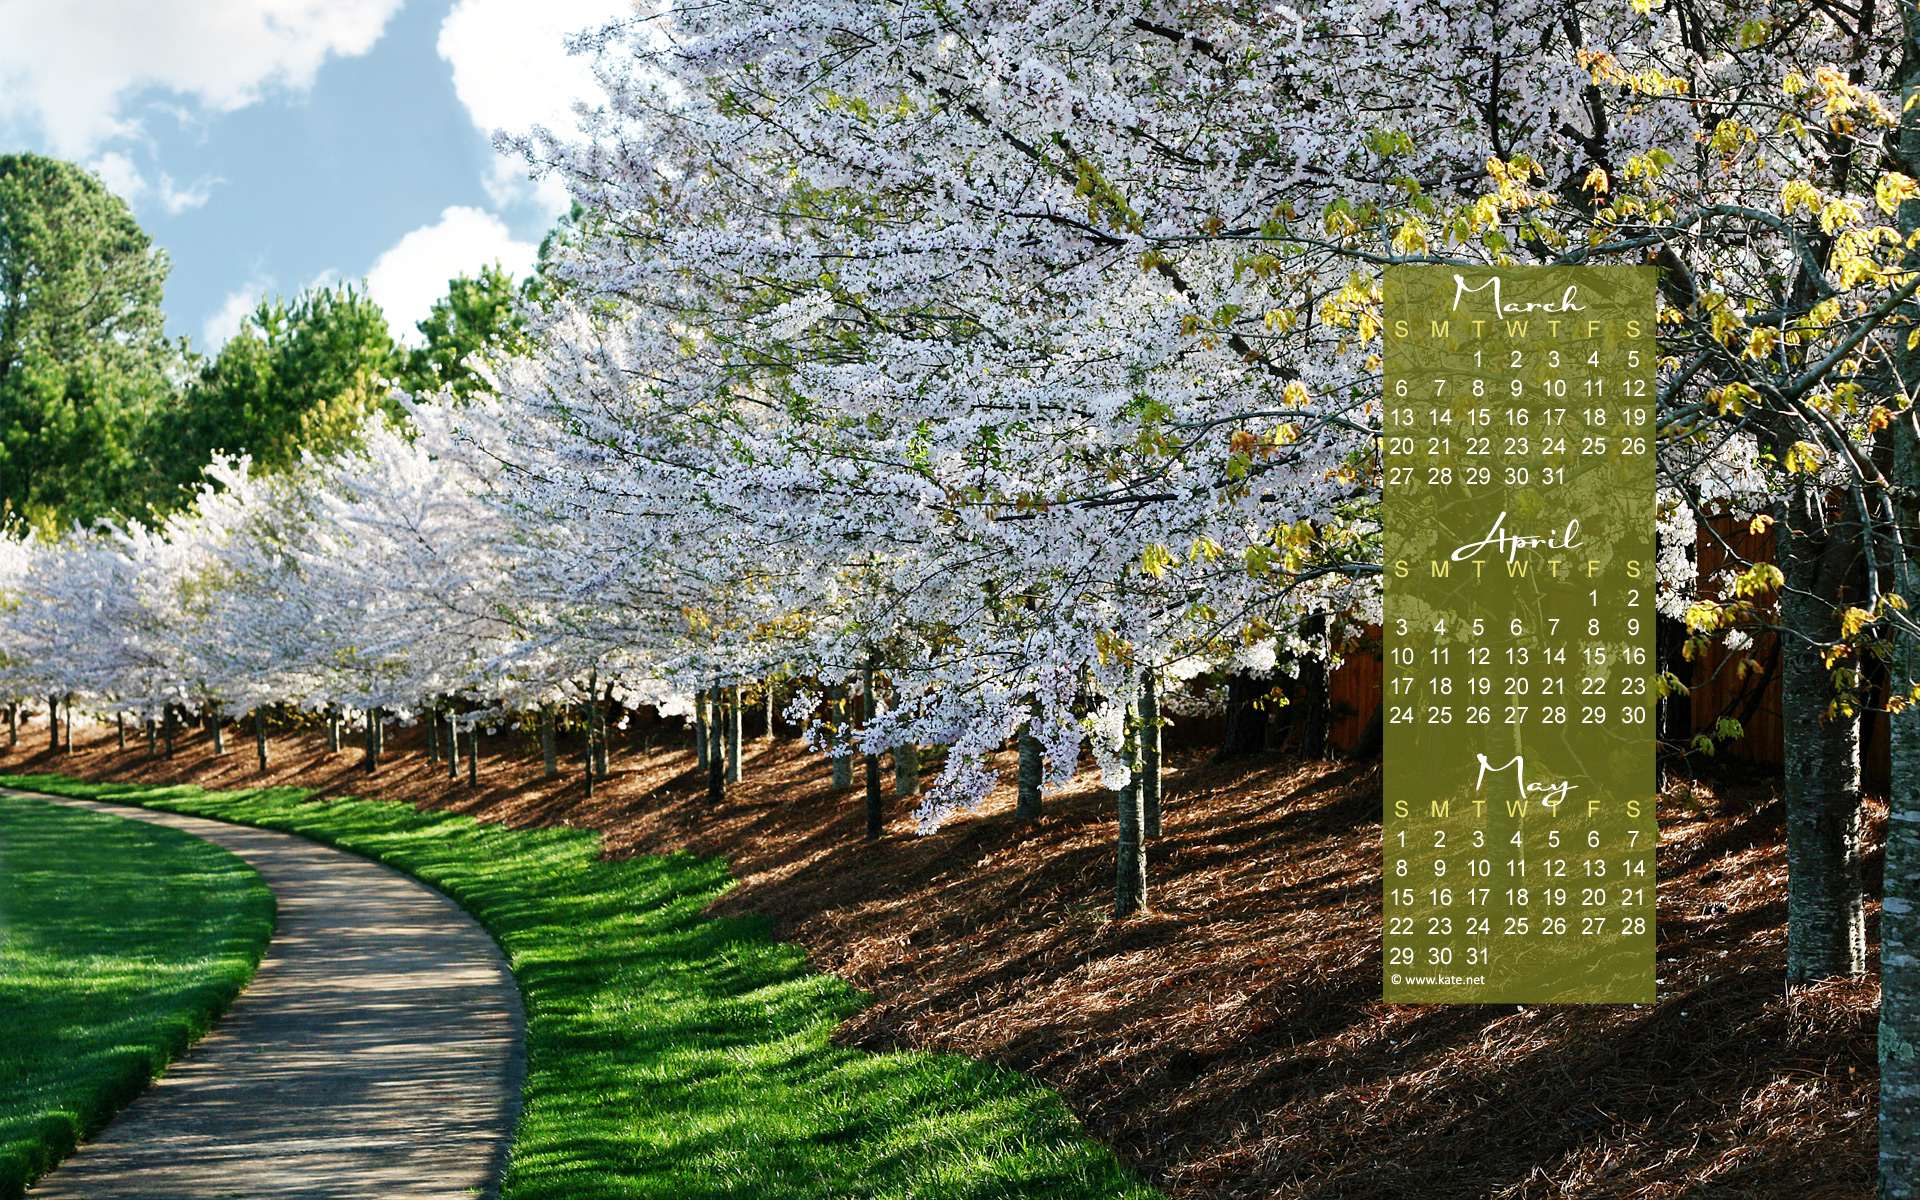 April Calendar Screensaver : April calendar wallpaper